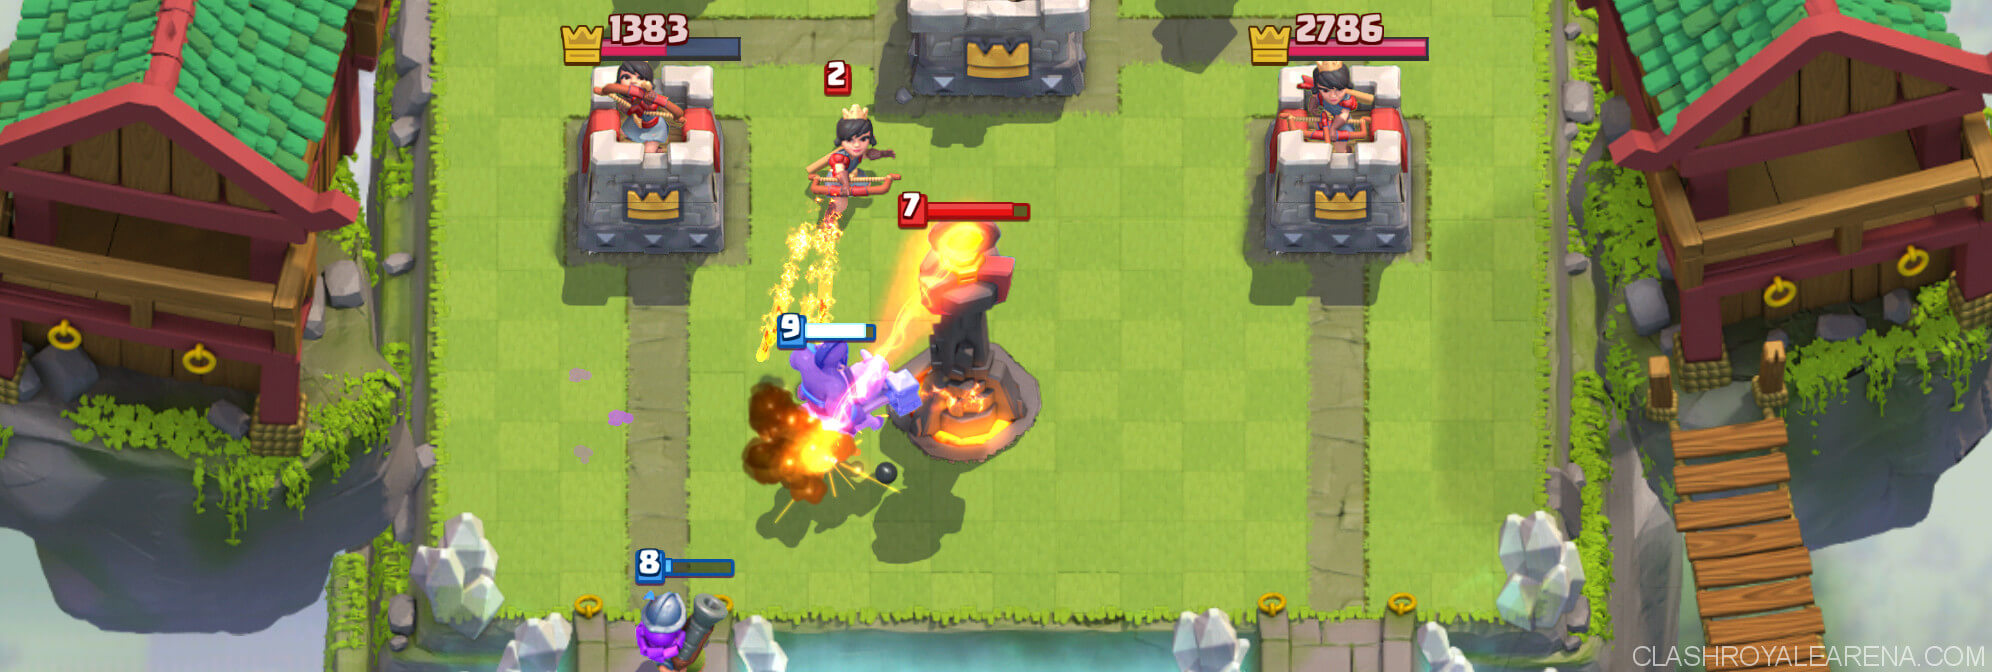 hog vs inferno tower 2